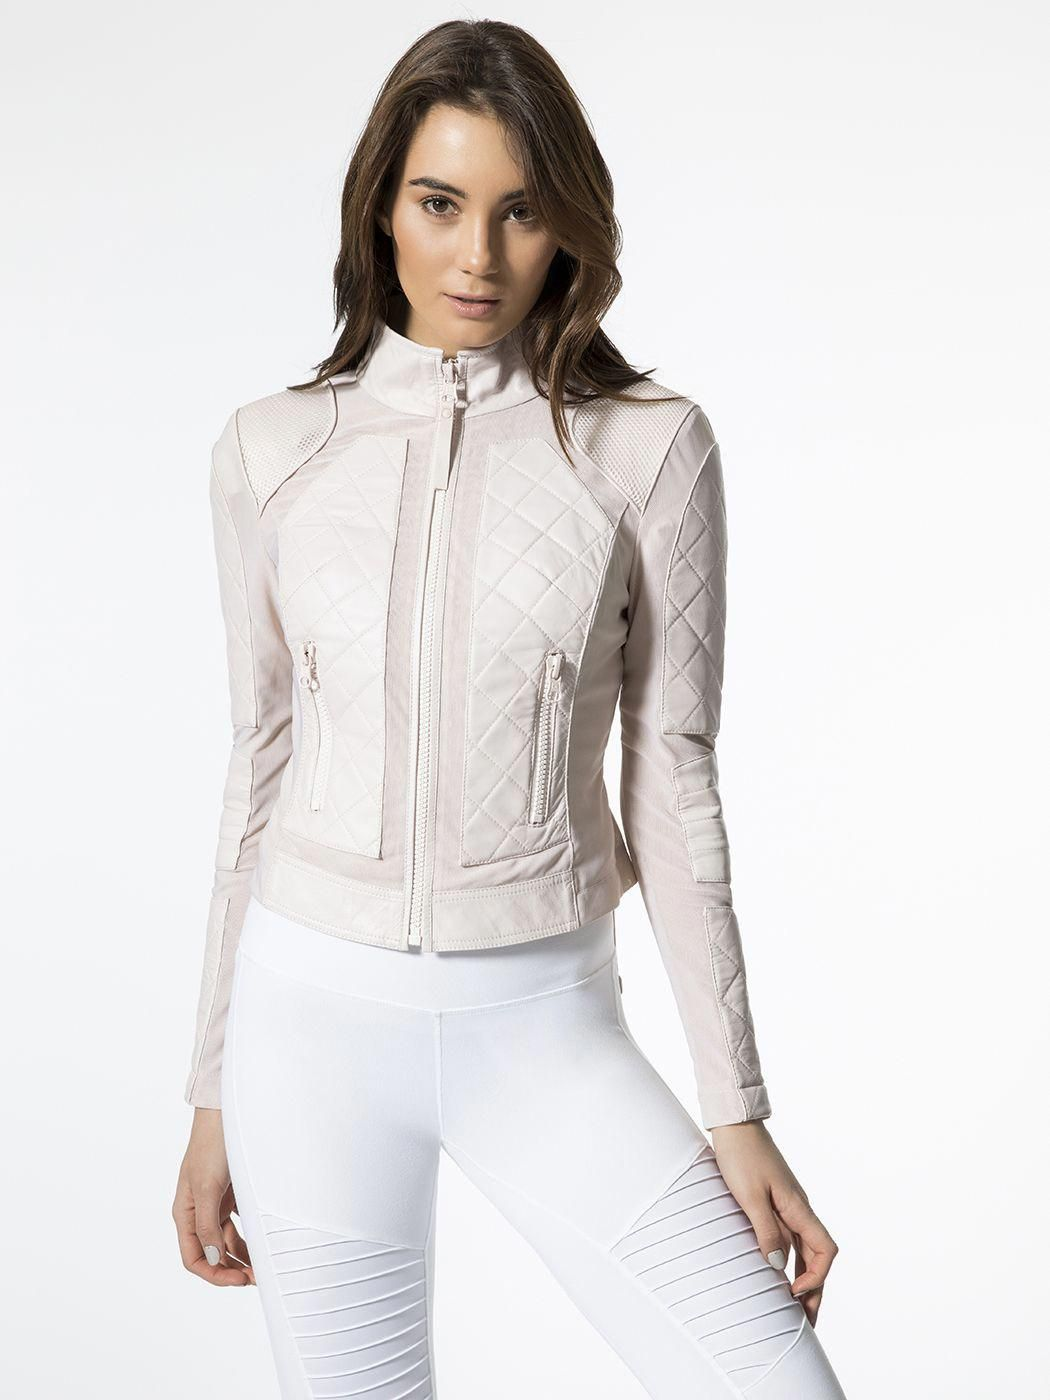 56bf80b54684 Leather Mesh Moto Jacket in Pale Pink by Blanc Noir from Carbon38   leatherjacketsformenpink